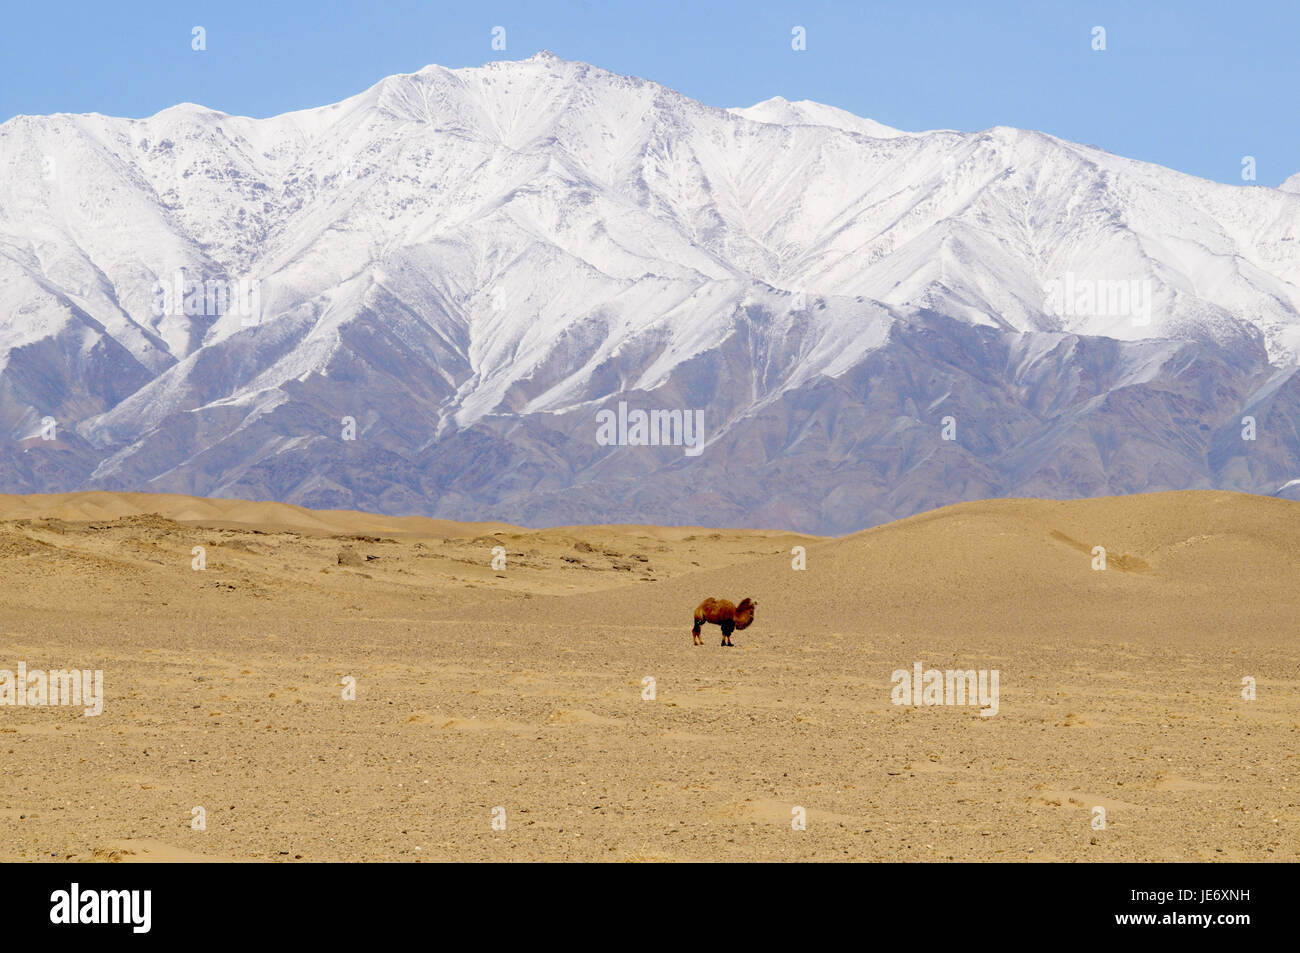 Mongolia, Khovd province, mountains, winter scenery, steppe, camel, - Stock Image